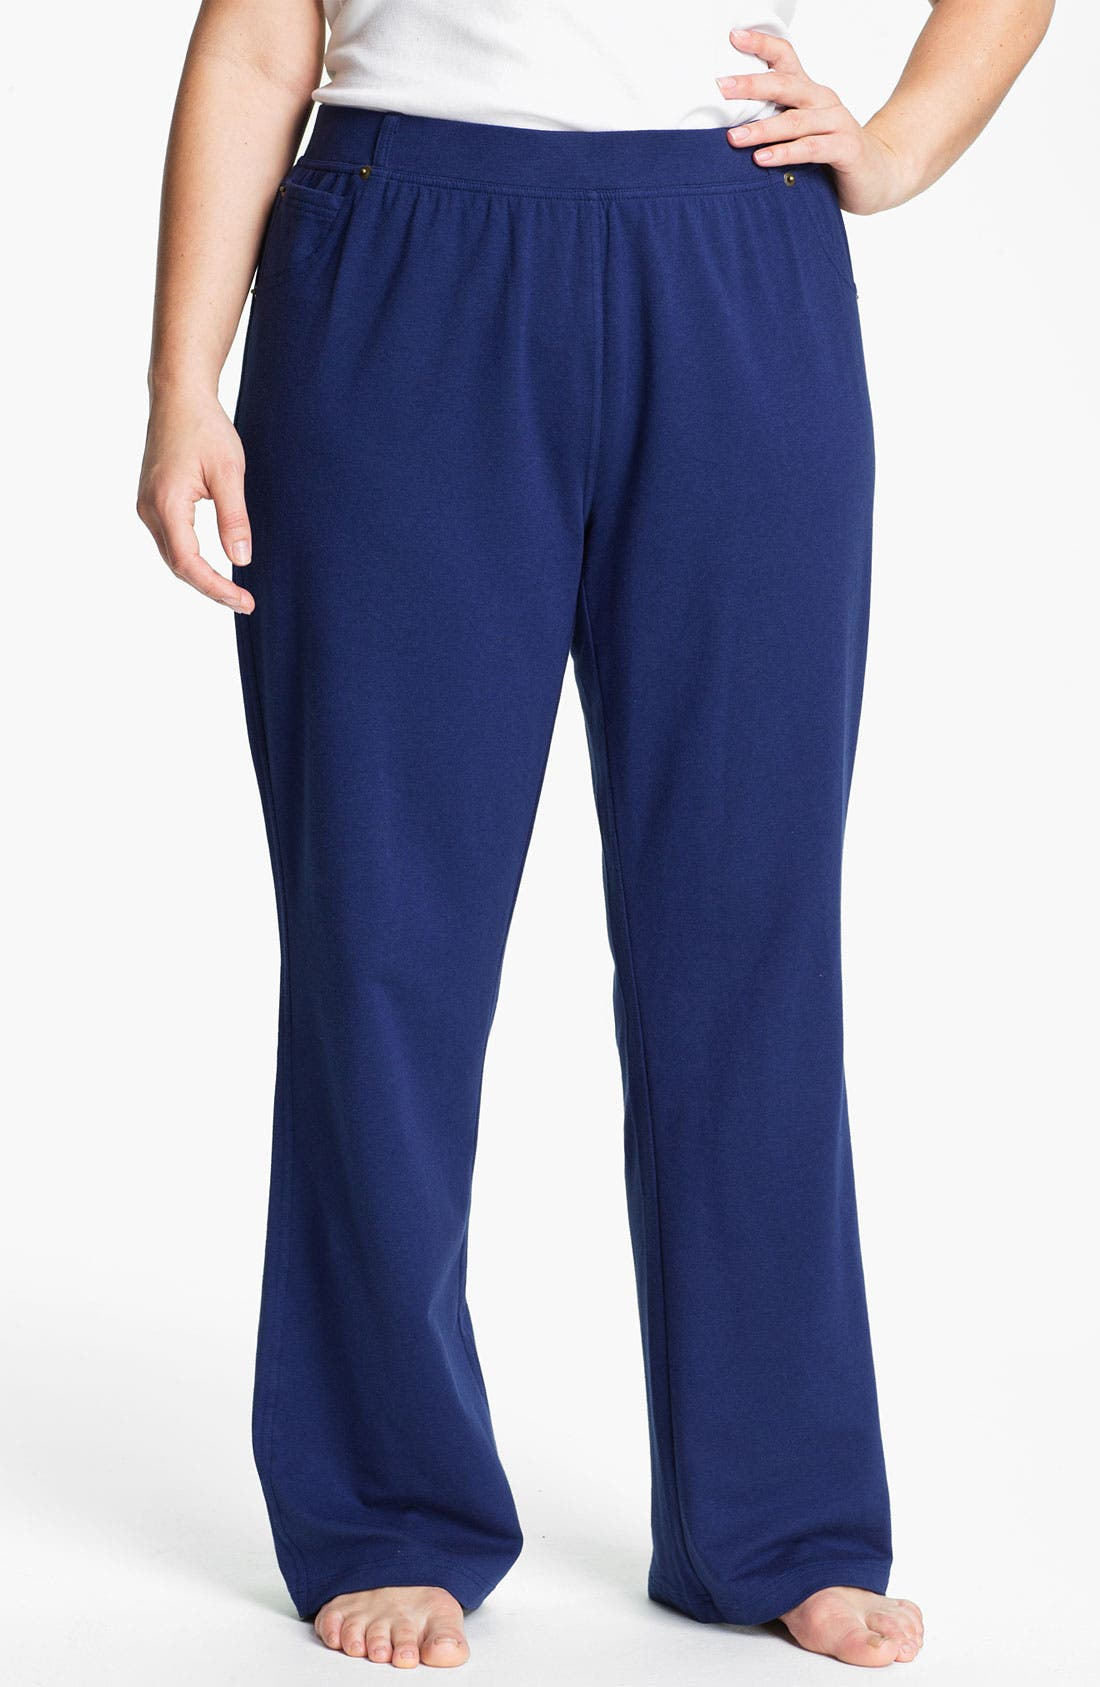 Alternate Image 1 Selected - Sejour Faux Pocket Knit Pants (Plus)